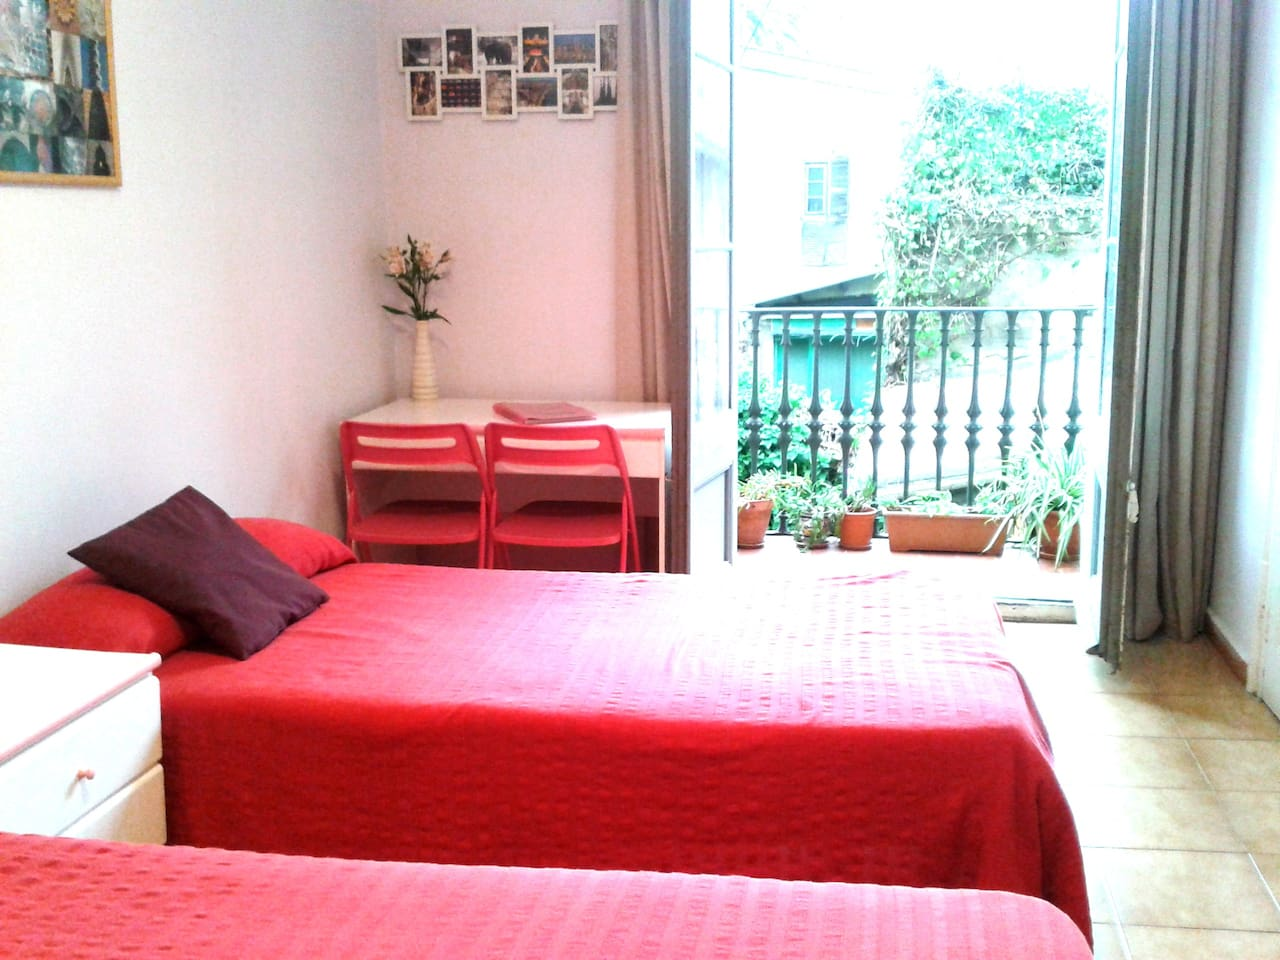 SUPER ROOM (B) with balcony to tast the atmosphere of BCN